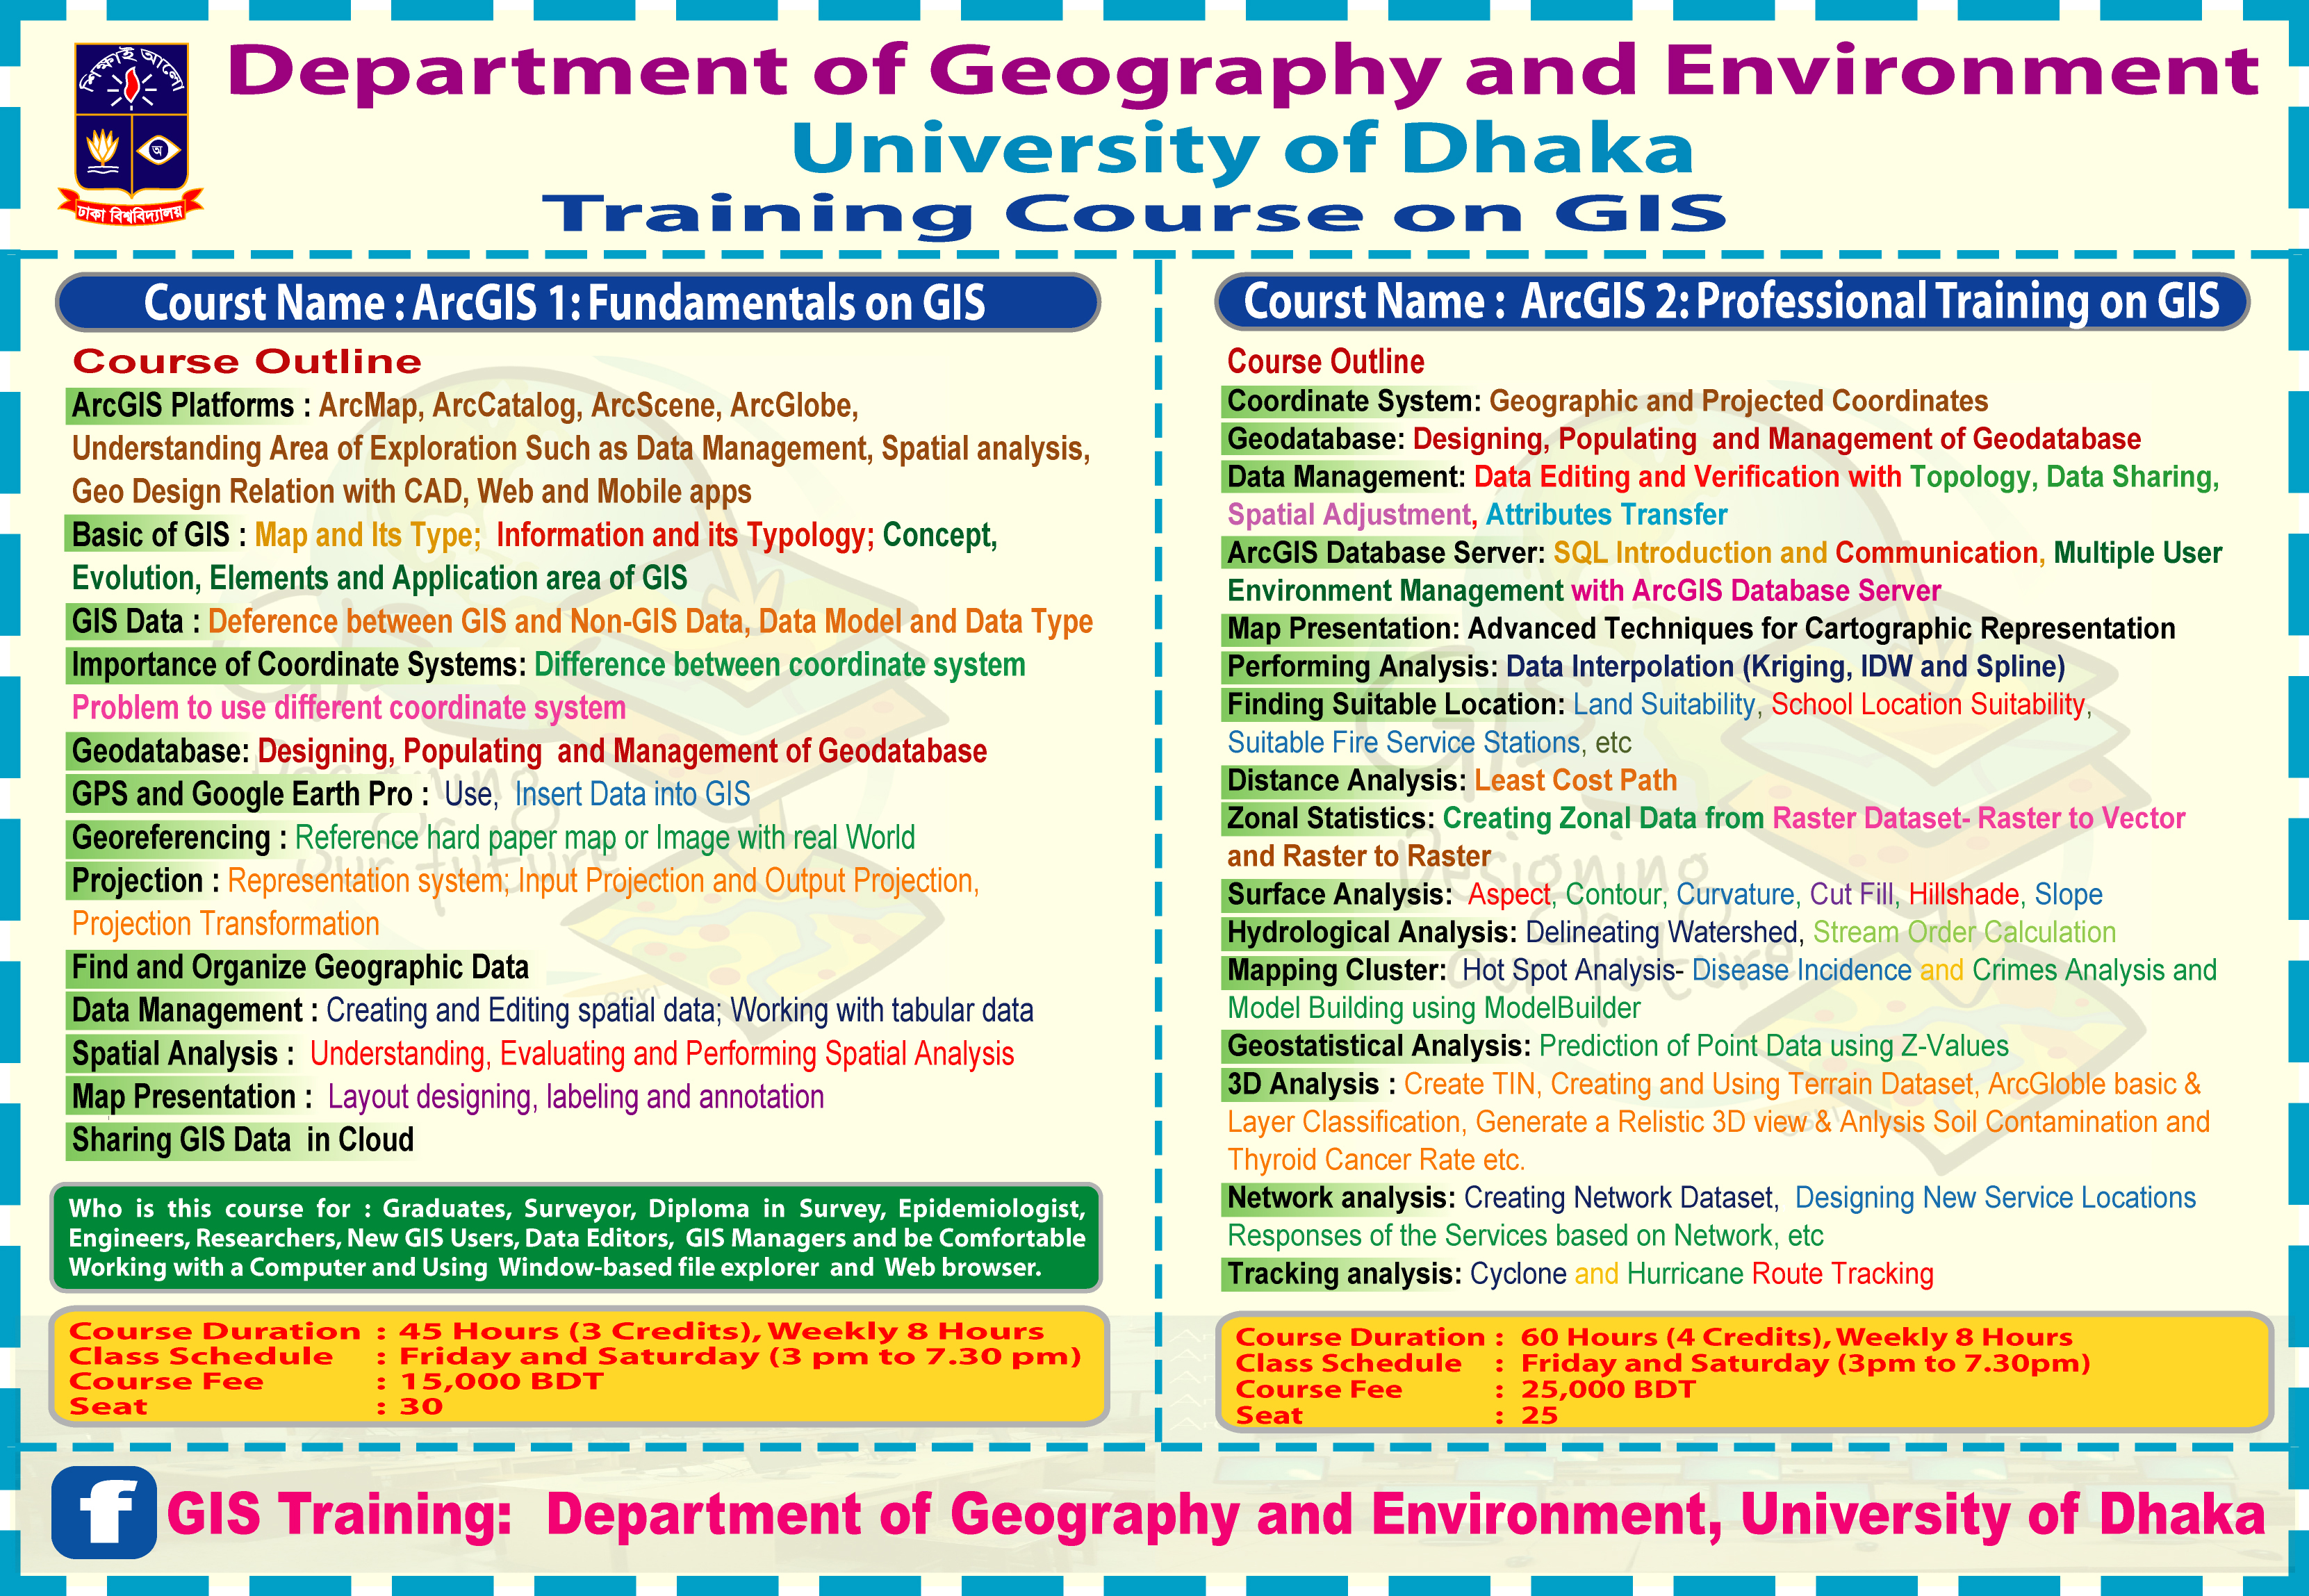 Department Of Geography And Environment University Of Dhaka Gis